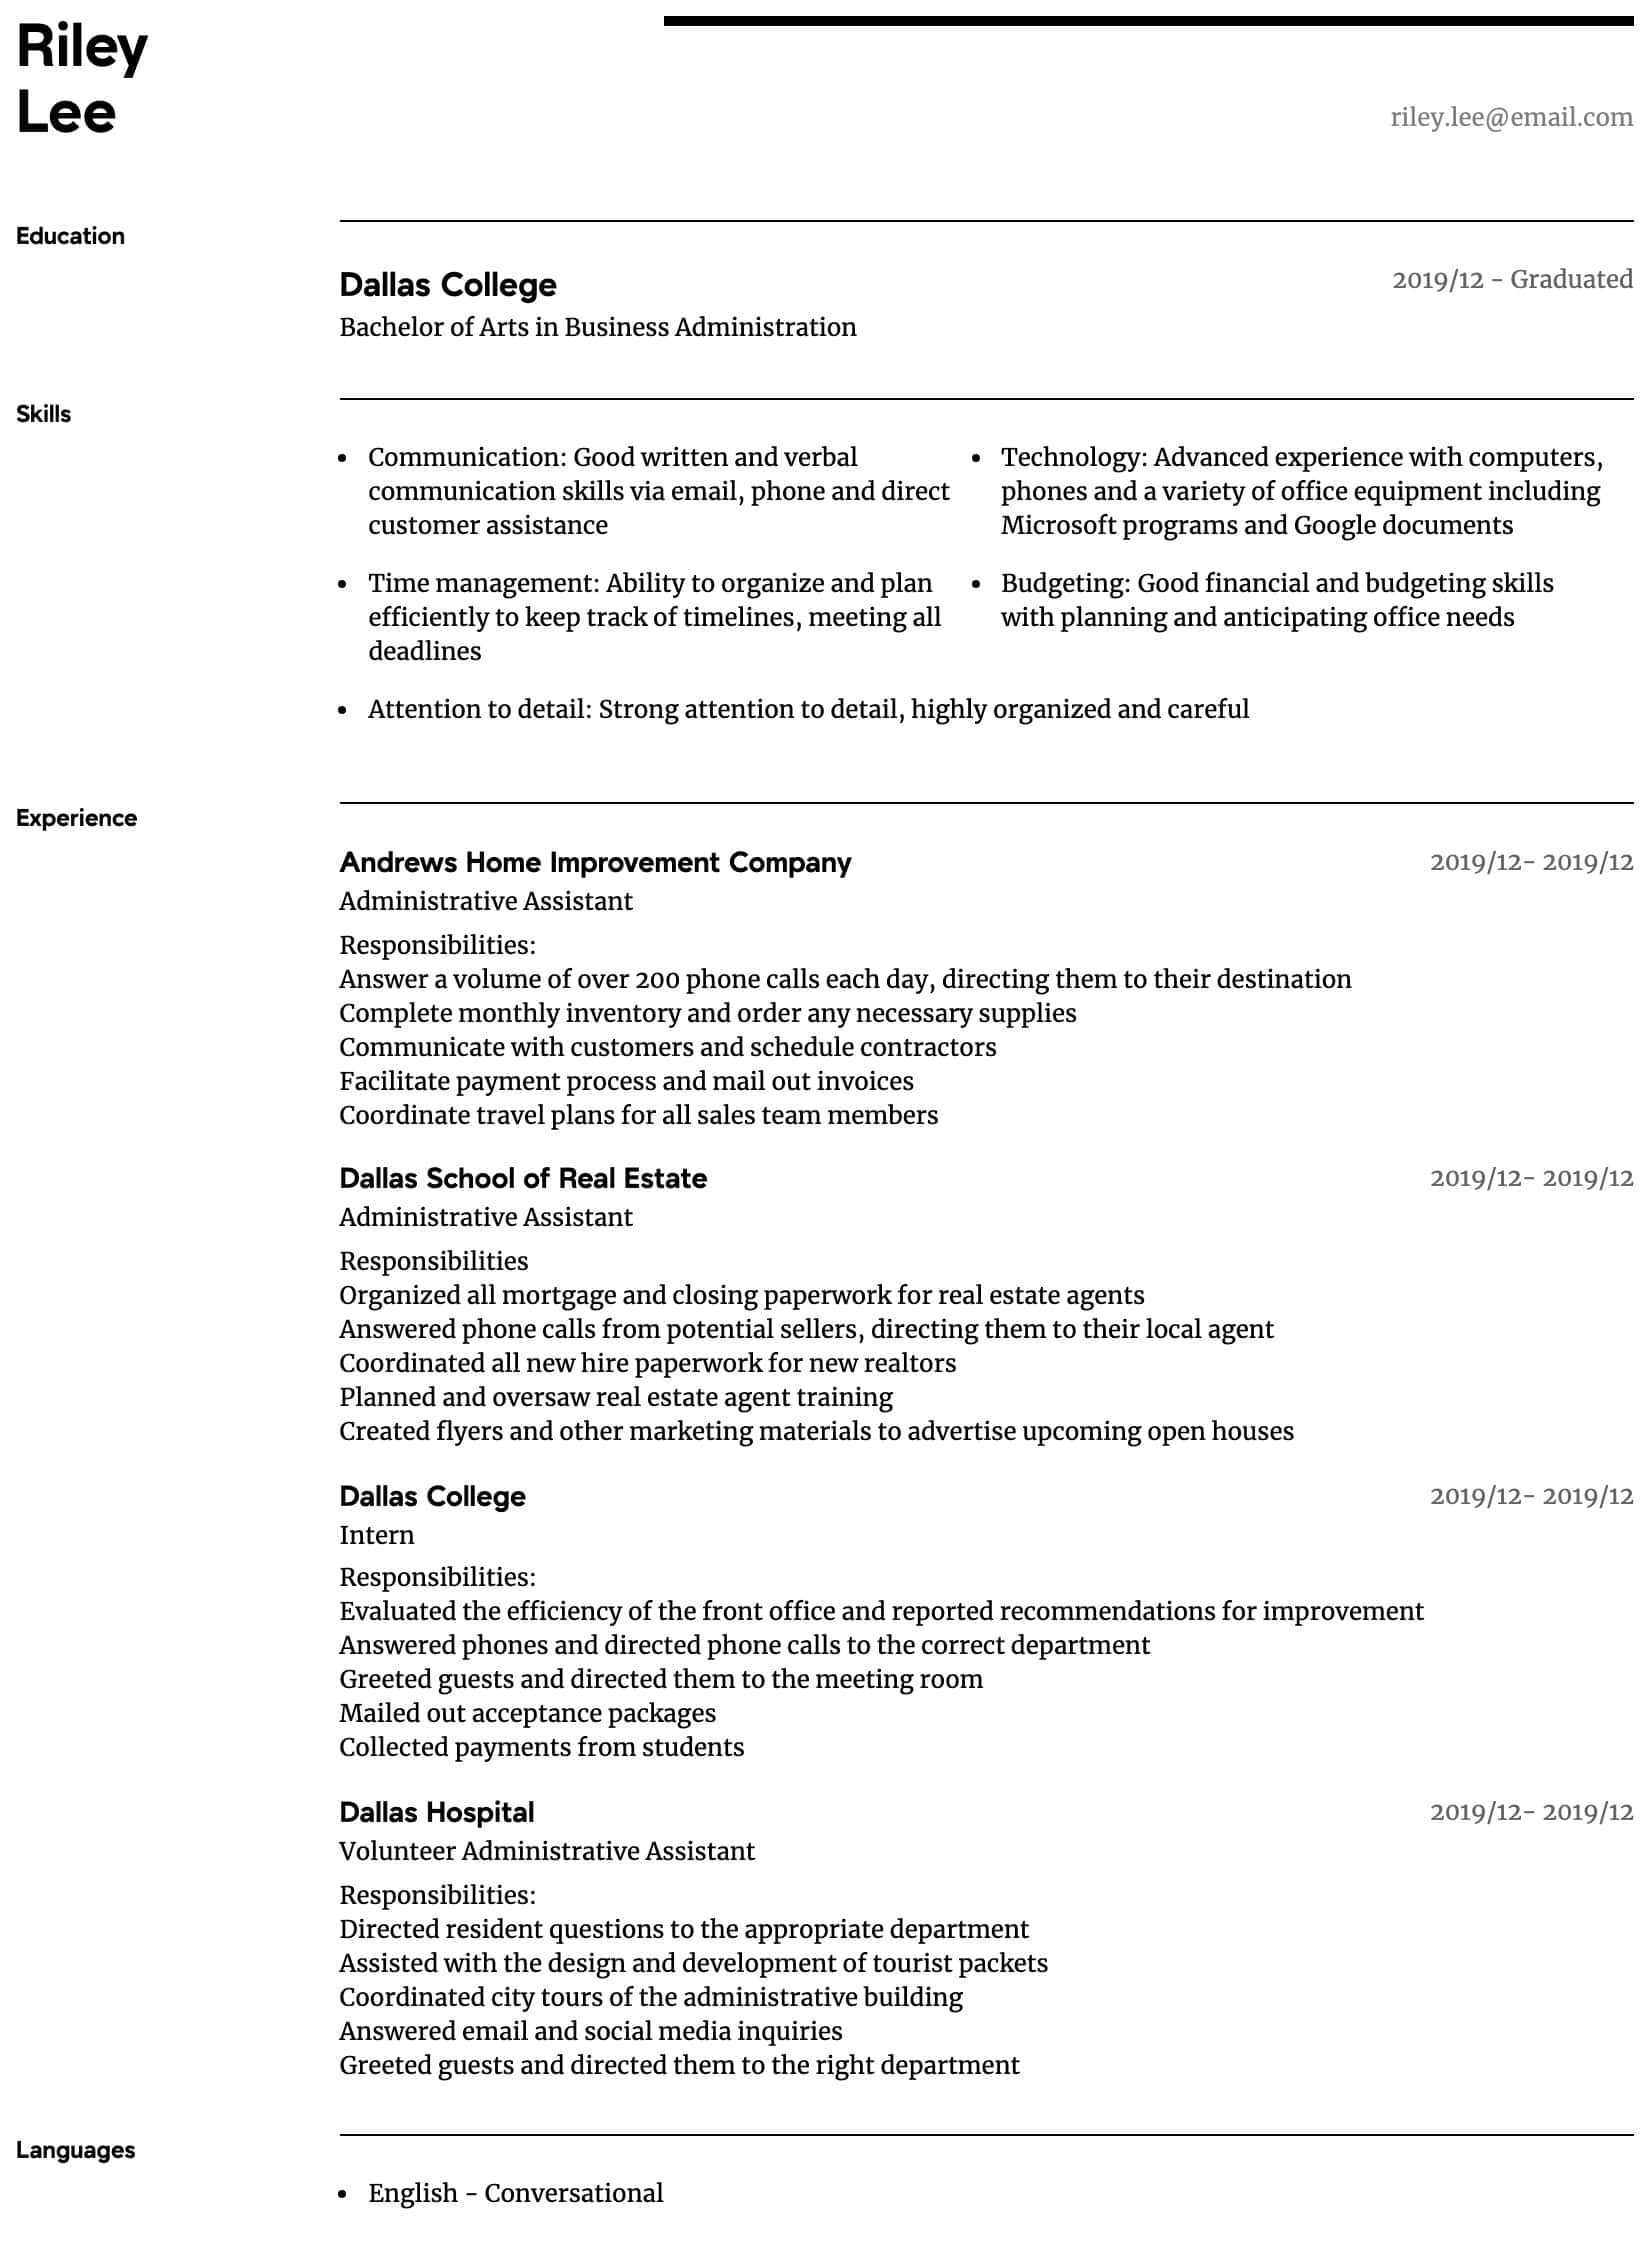 administrative assistant resume samples all experience levels professional intermediate Resume Administrative Professional Resume